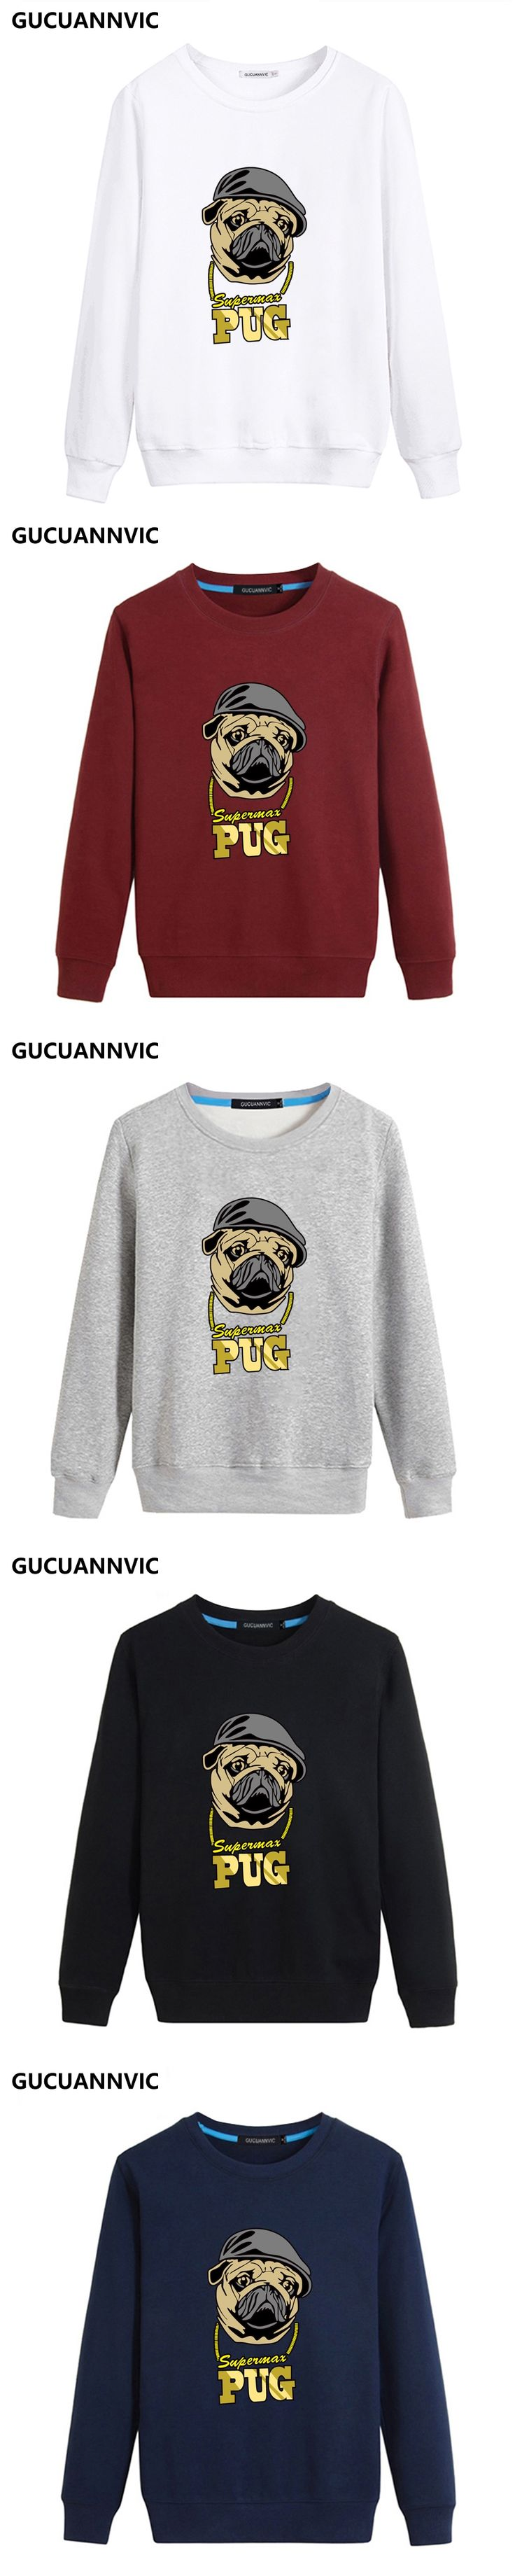 Round neck pug dog pattern printed sweatshirts for men brief temperature cotton pullover tracksuit hip pop new leisure tops